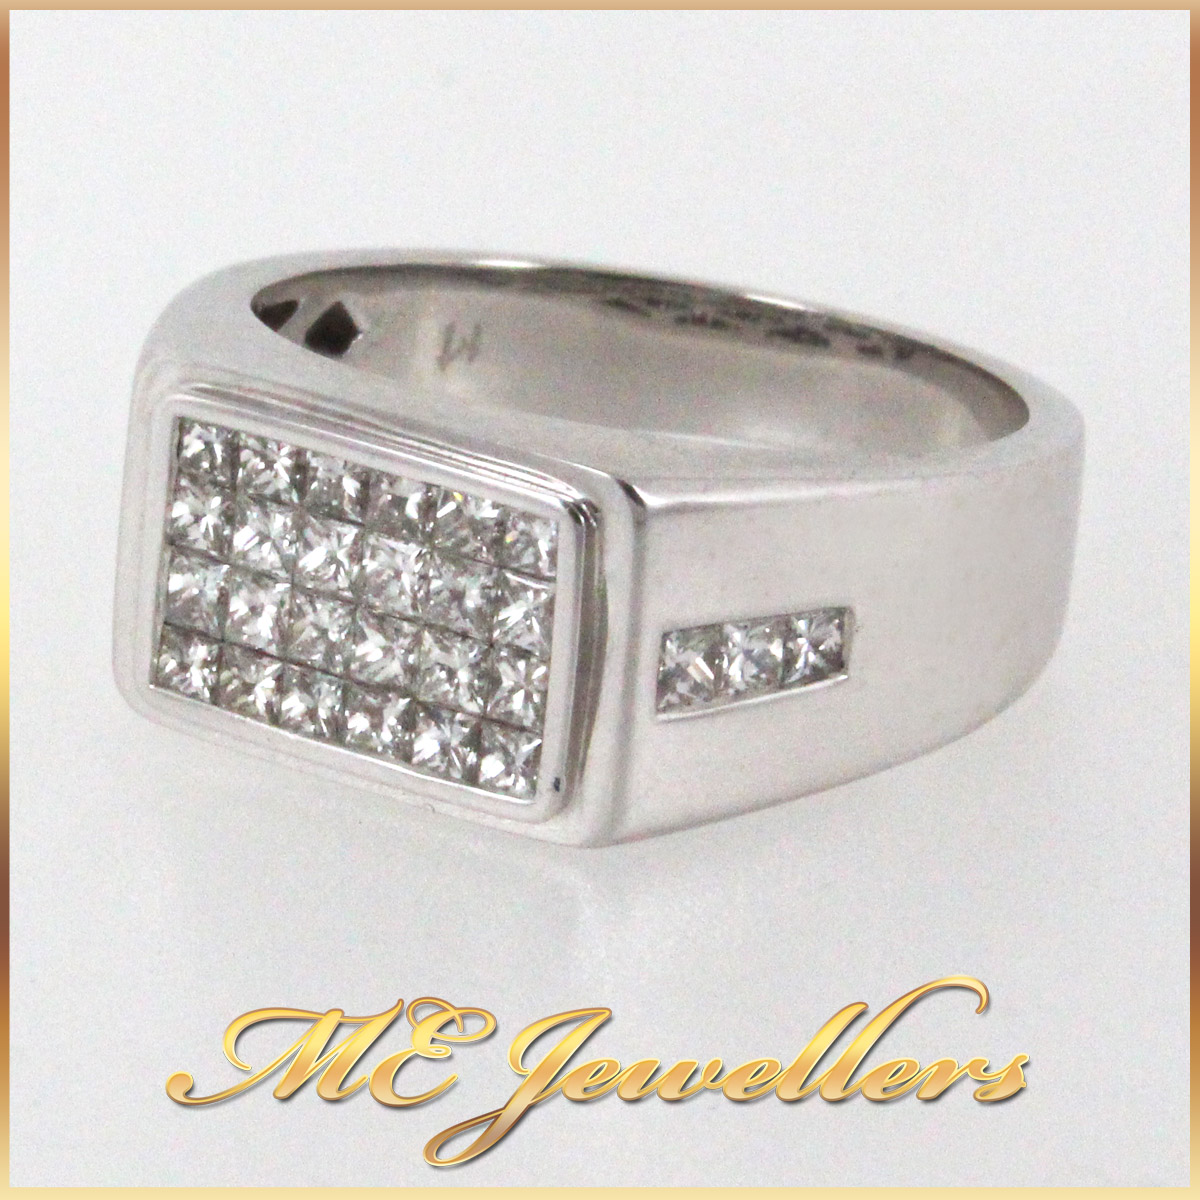 345 Mens Dress Ring With Illision Set Diamond in 18K White Gold side 1